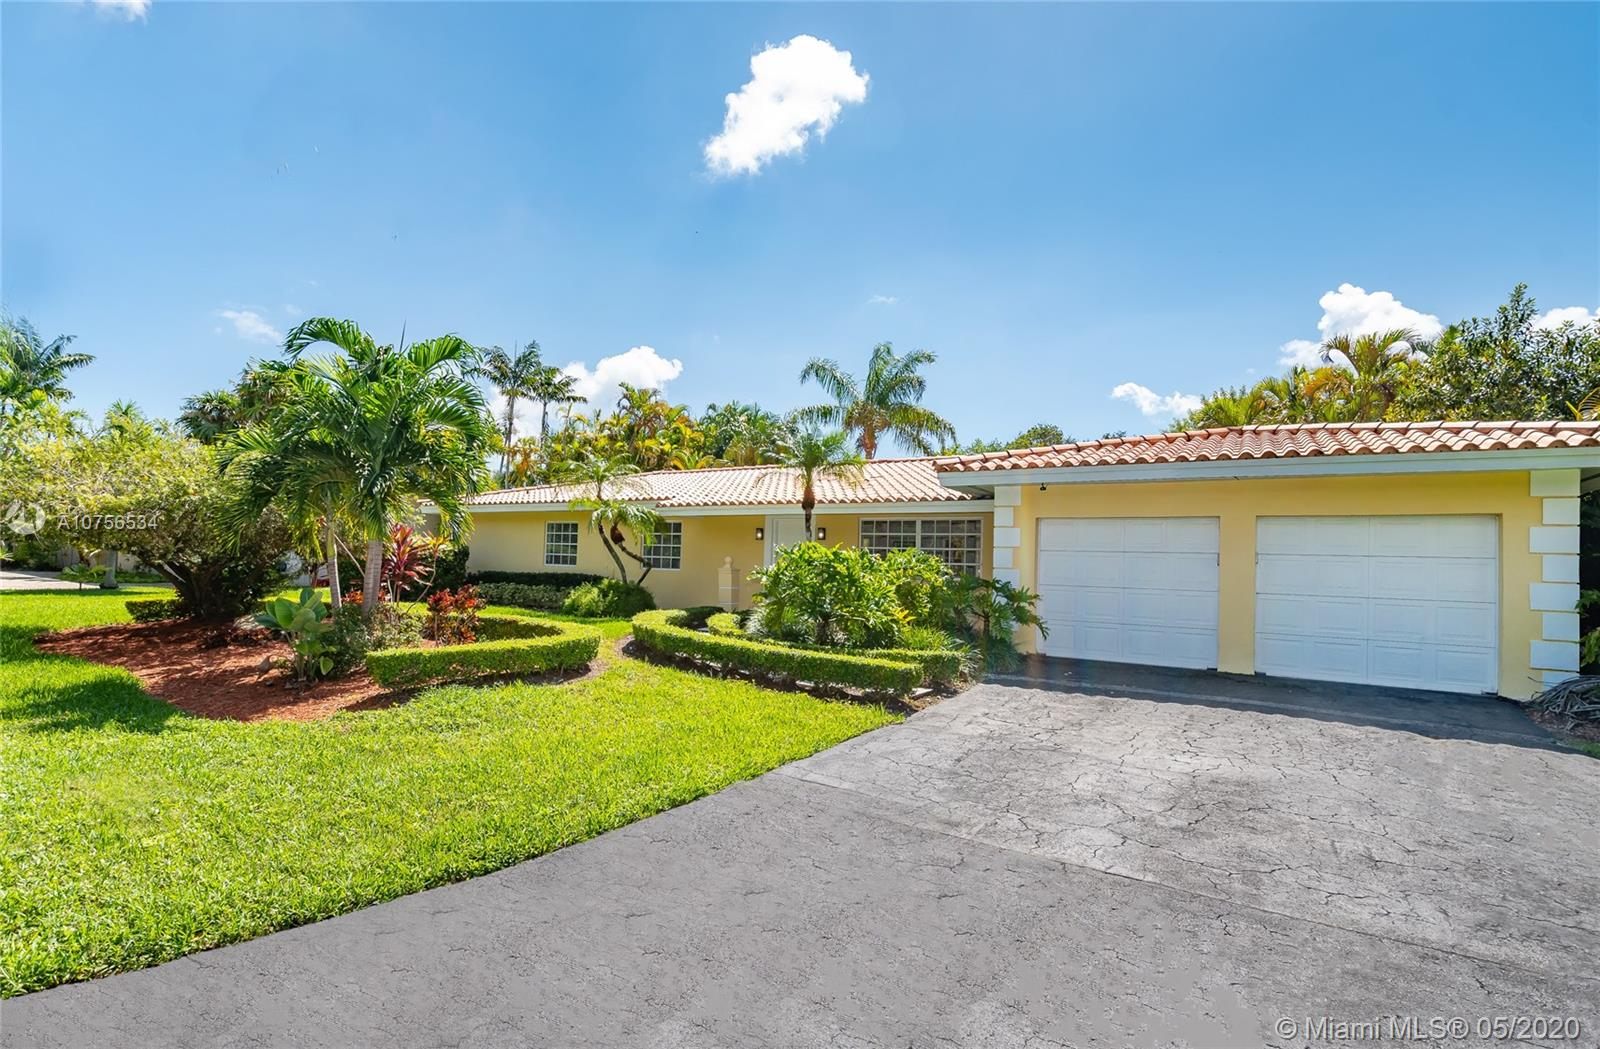 1360 Campamento Ave, Kendall in Miami-dade County County, FL 33156 Home for Sale